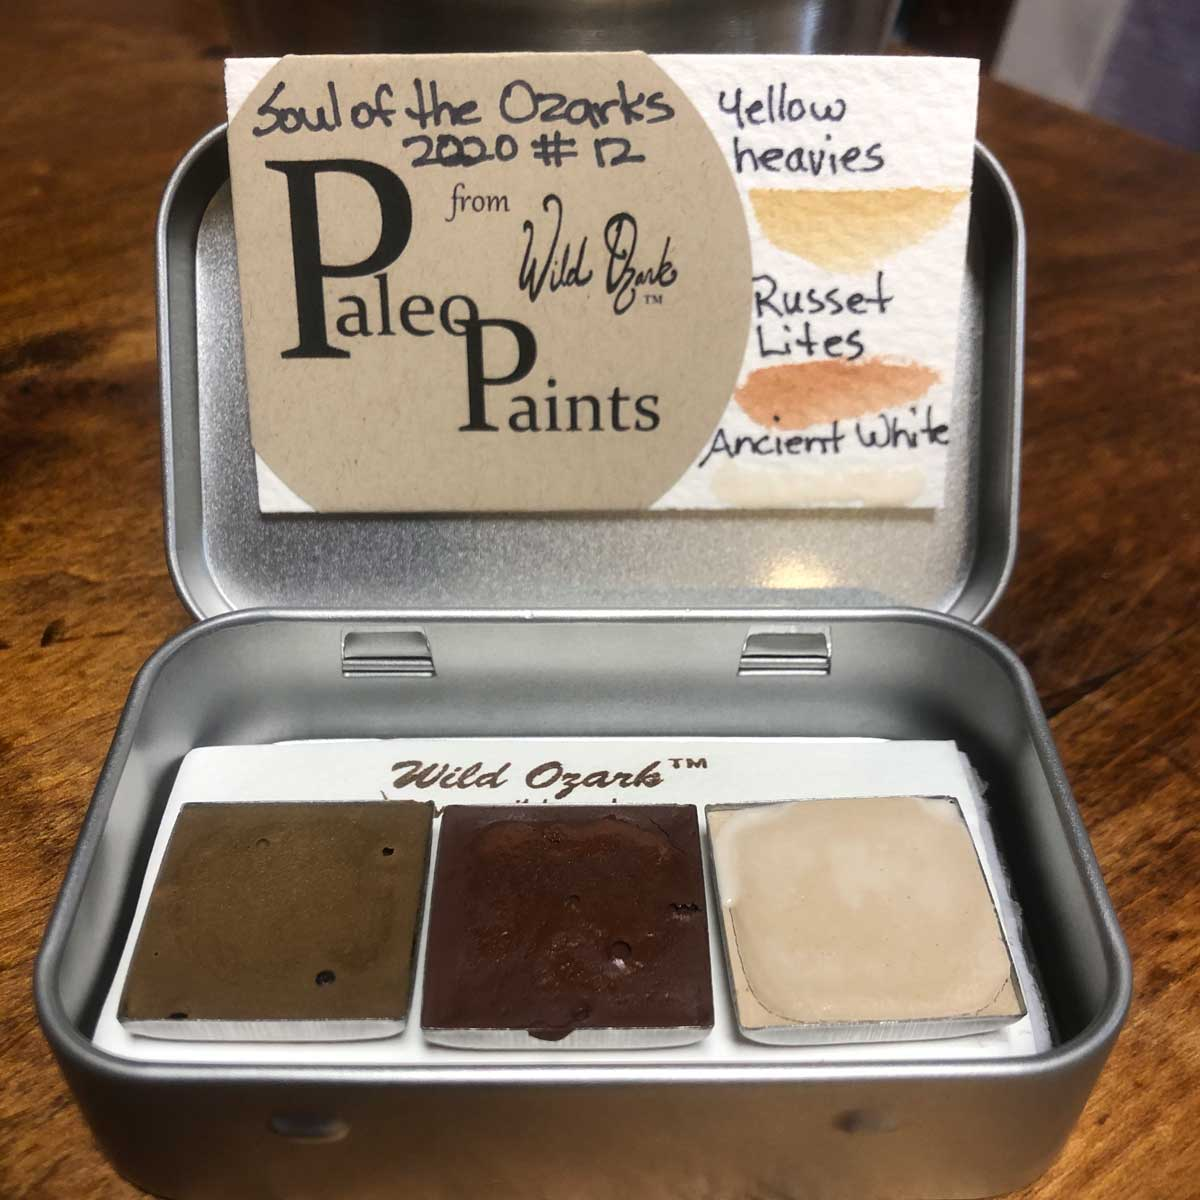 Handmade watercolor paint from Ozark stones. Soul of the Ozarks 2020 Collection no. 12.